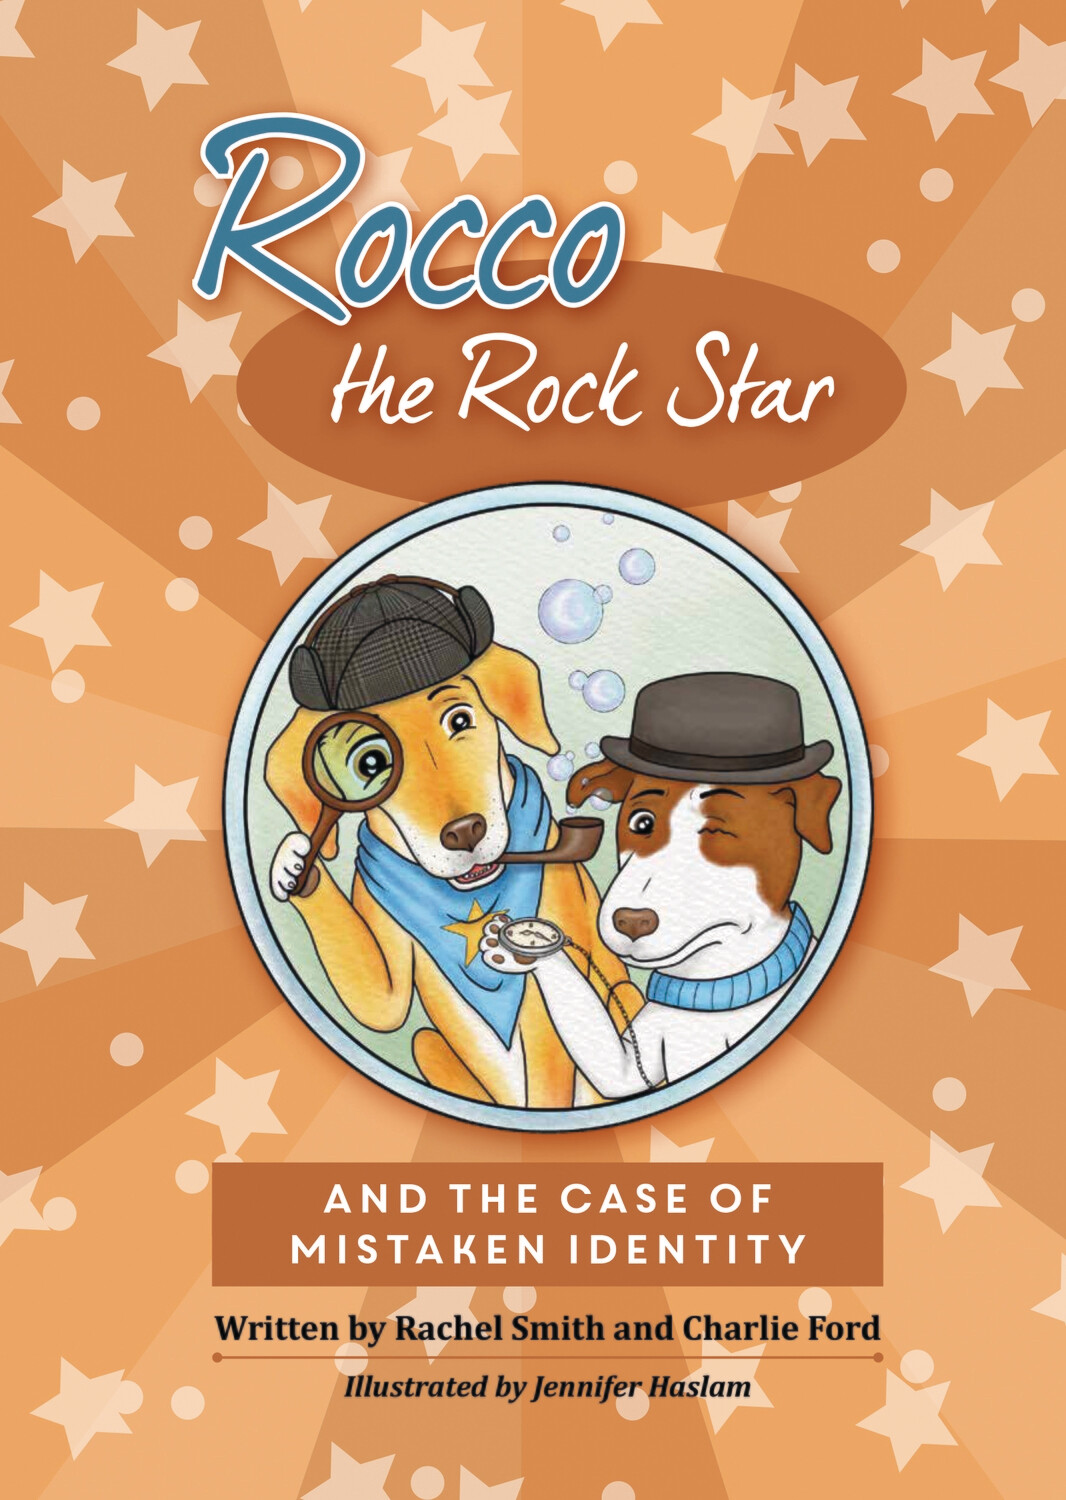 ROCCO THE ROCK STAR AND THE CASE OF MISTAKEN IDENTITY - CHILDREN'S BOOK